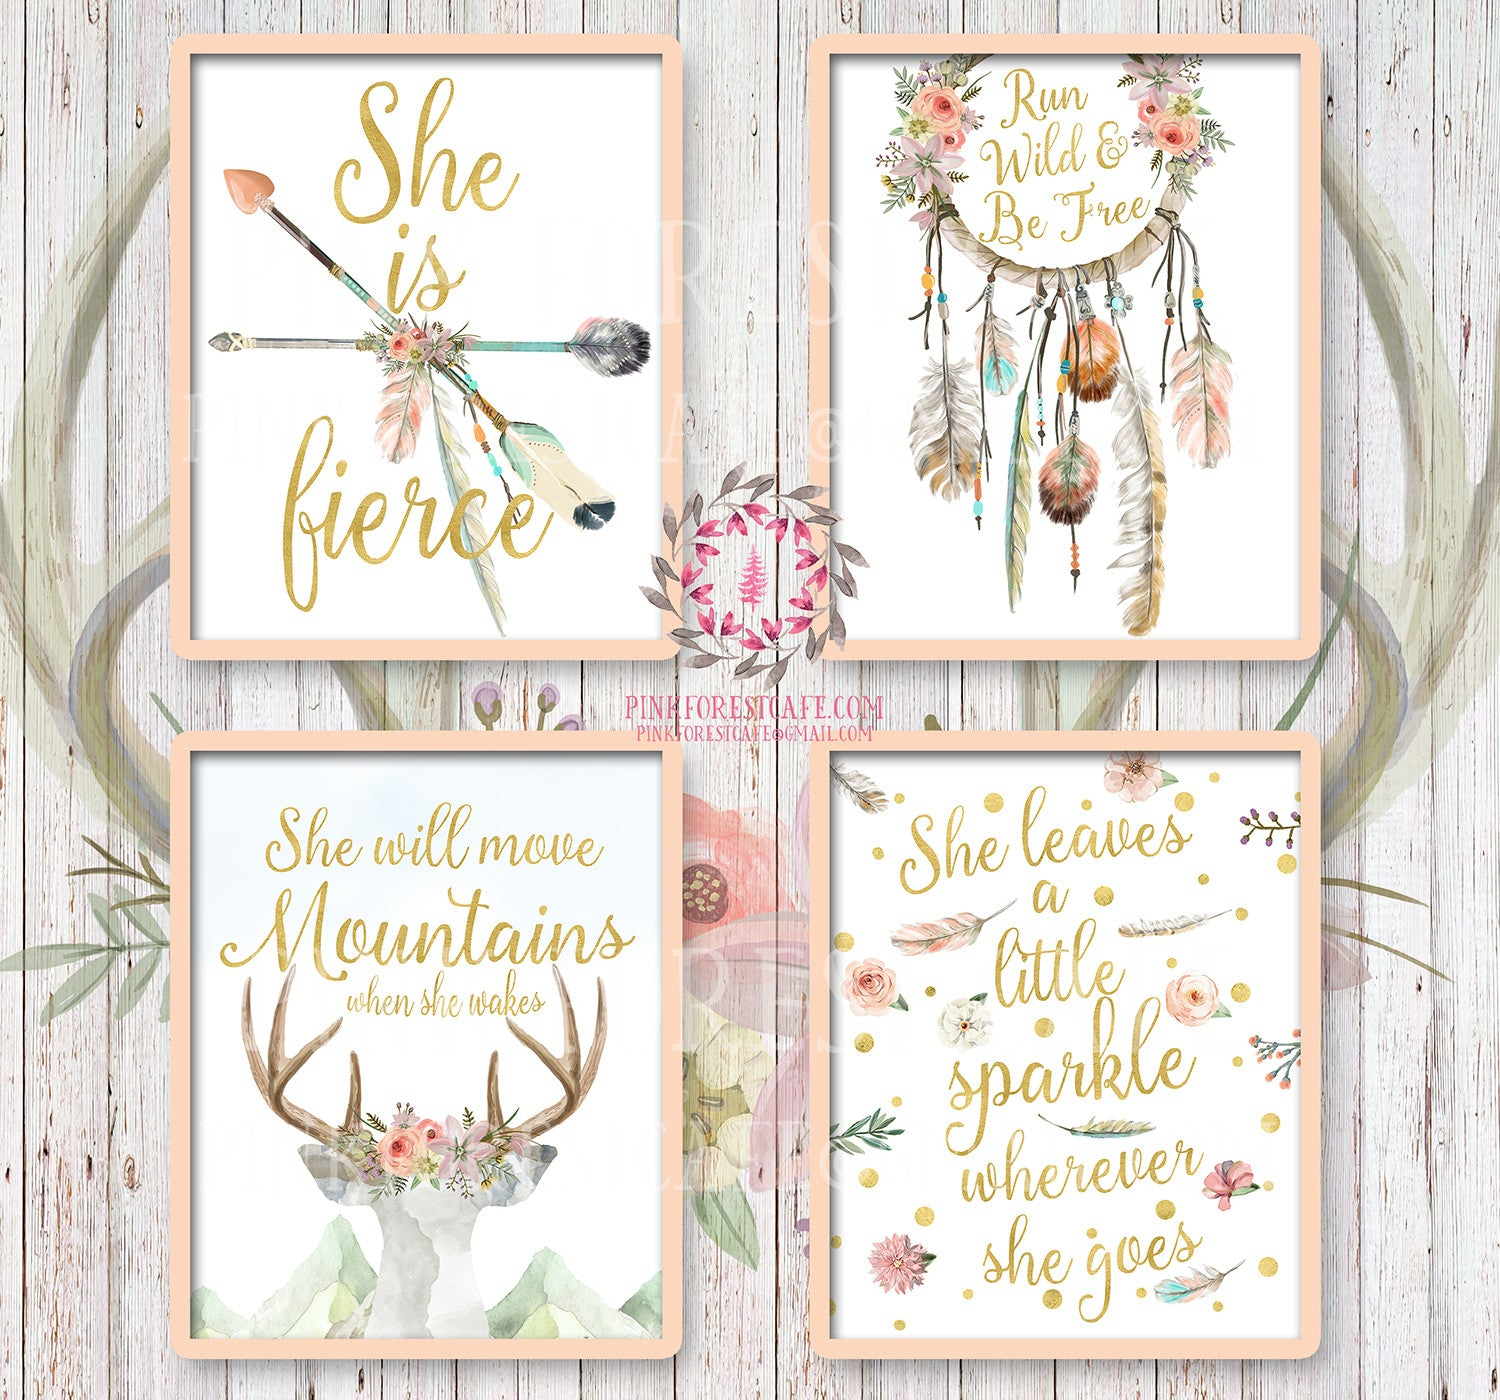 She is Fierce She Will Move Mountains Wall Art Print Boho Bohemian Watercolor Gold Floral Nursery  sc 1 st  Pink Forest Cafe & She is Fierce She Will Move Mountains Wall Art Print Boho Bohemian ...